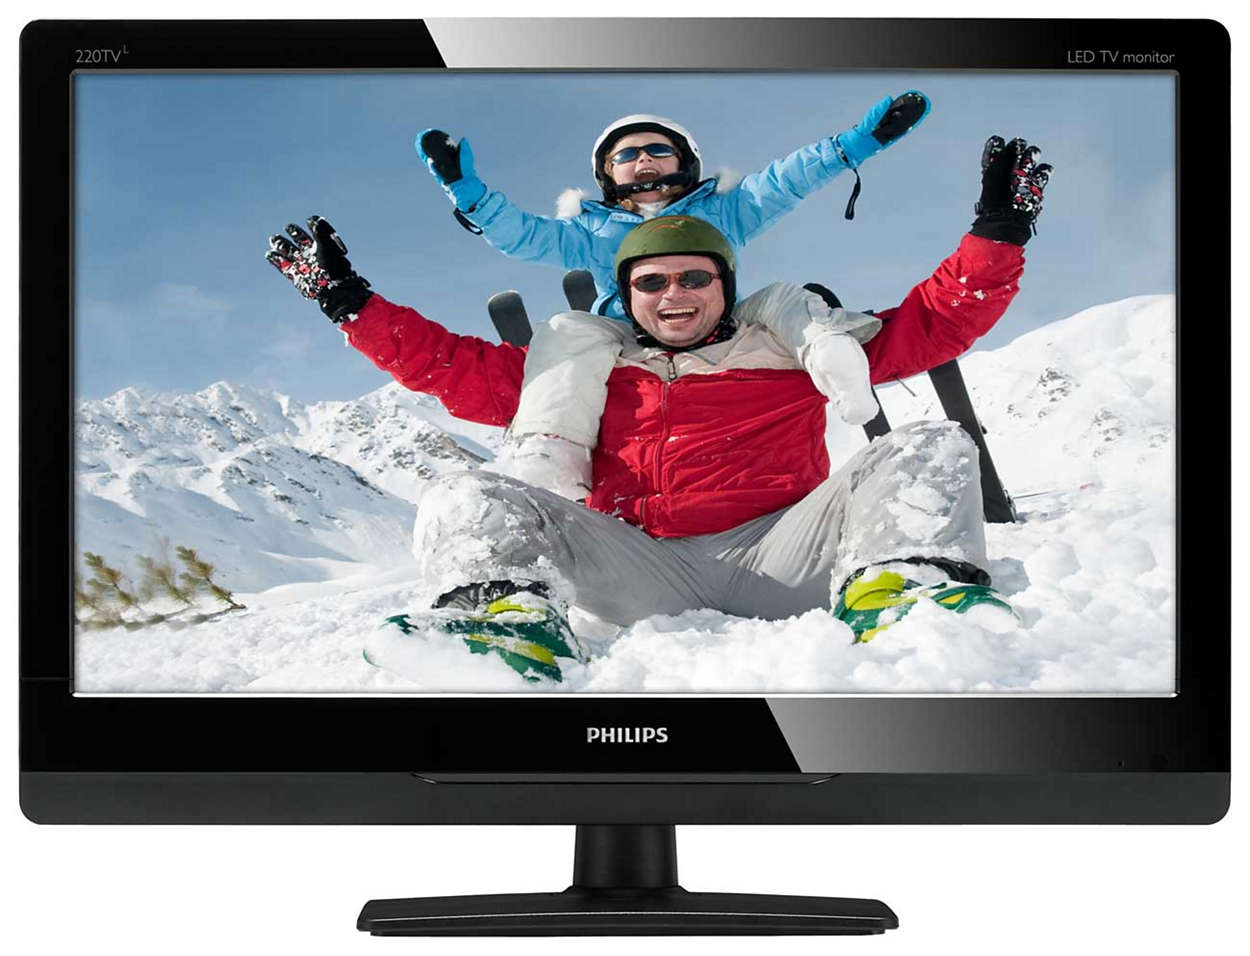 Great TV viewing on your Full HD LED monitor